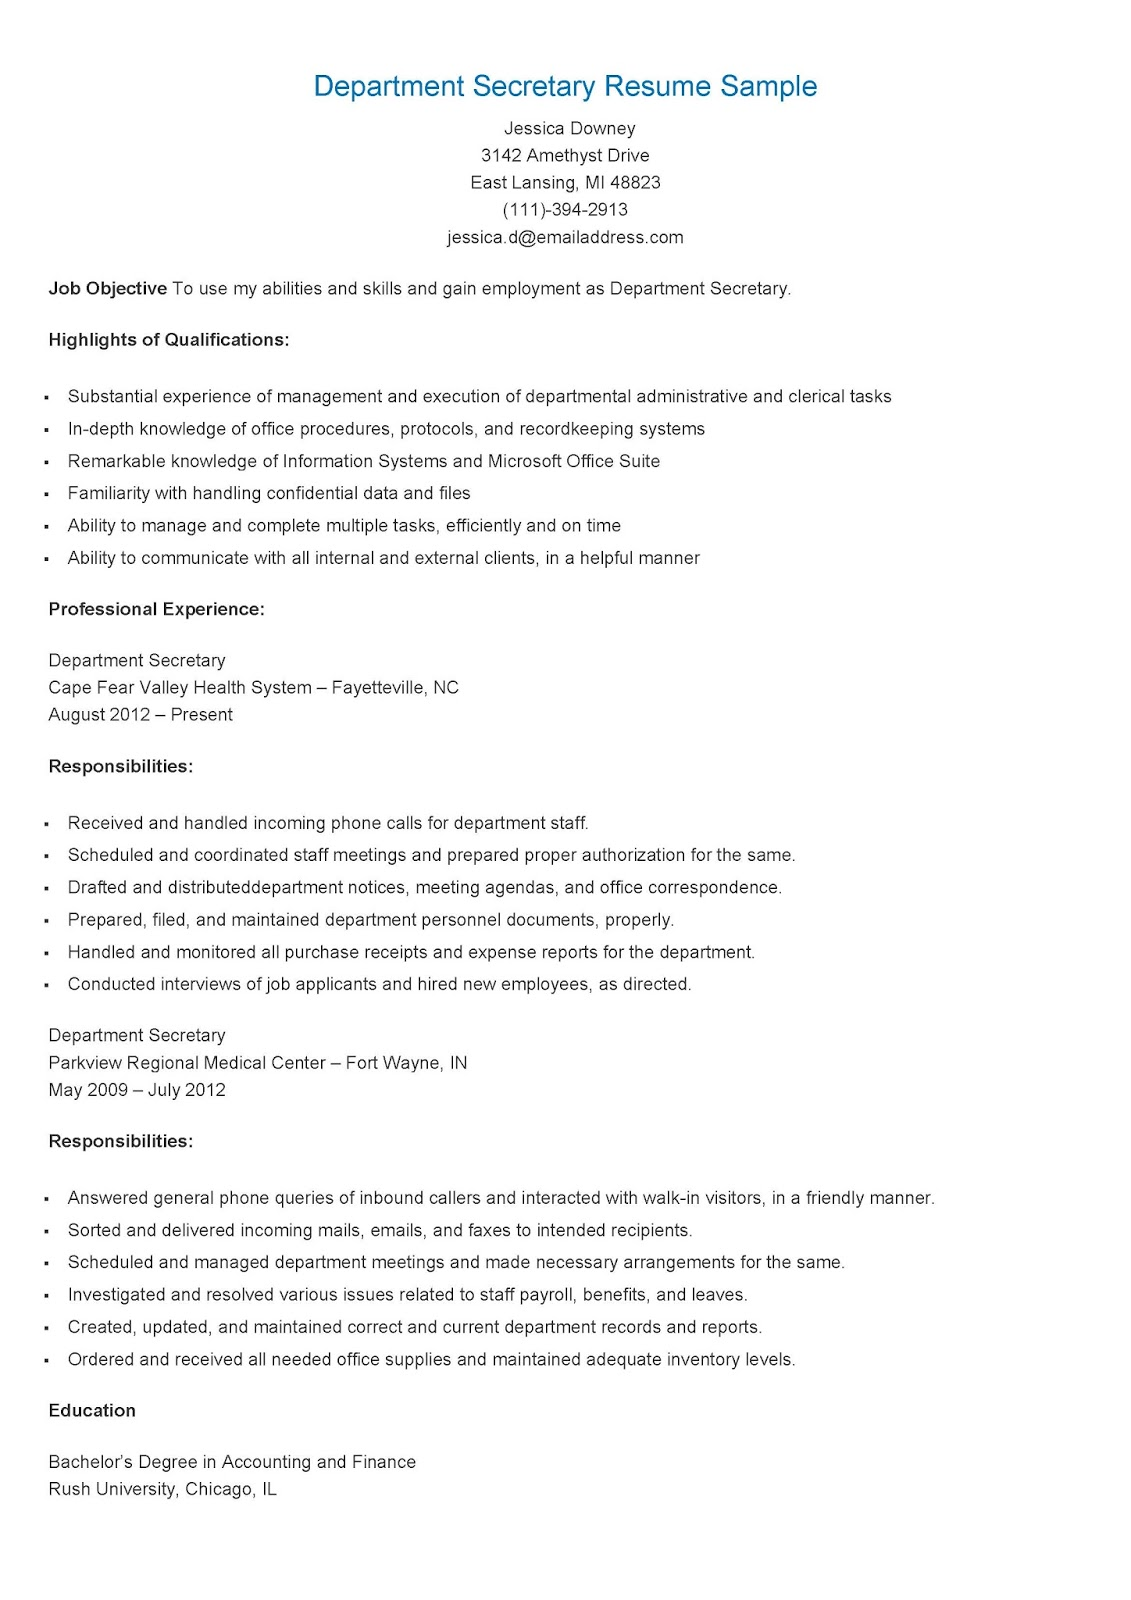 resume samples  department secretary resume sample